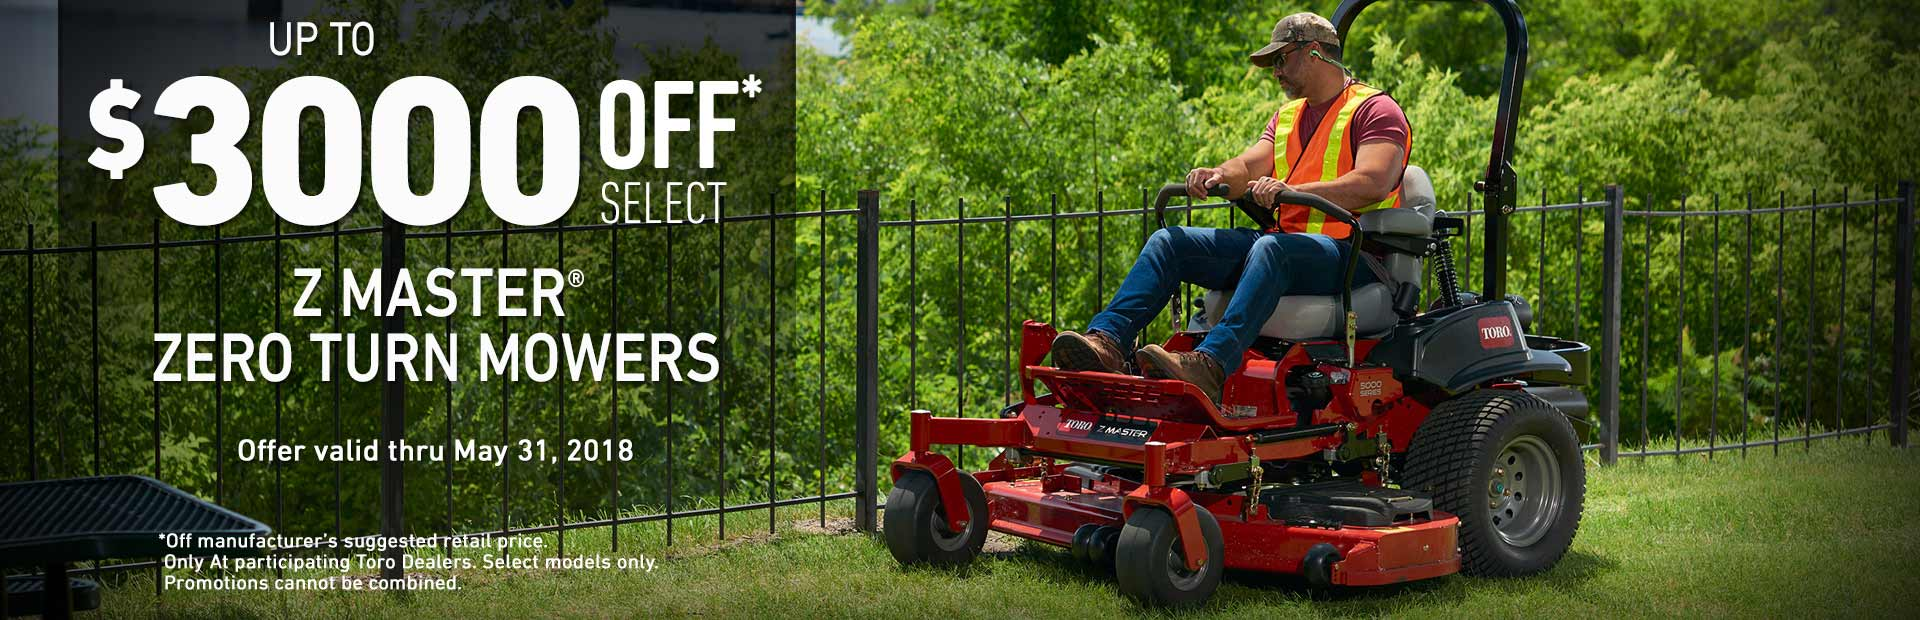 Toro: Up to $3000 off MSRP on Z Master